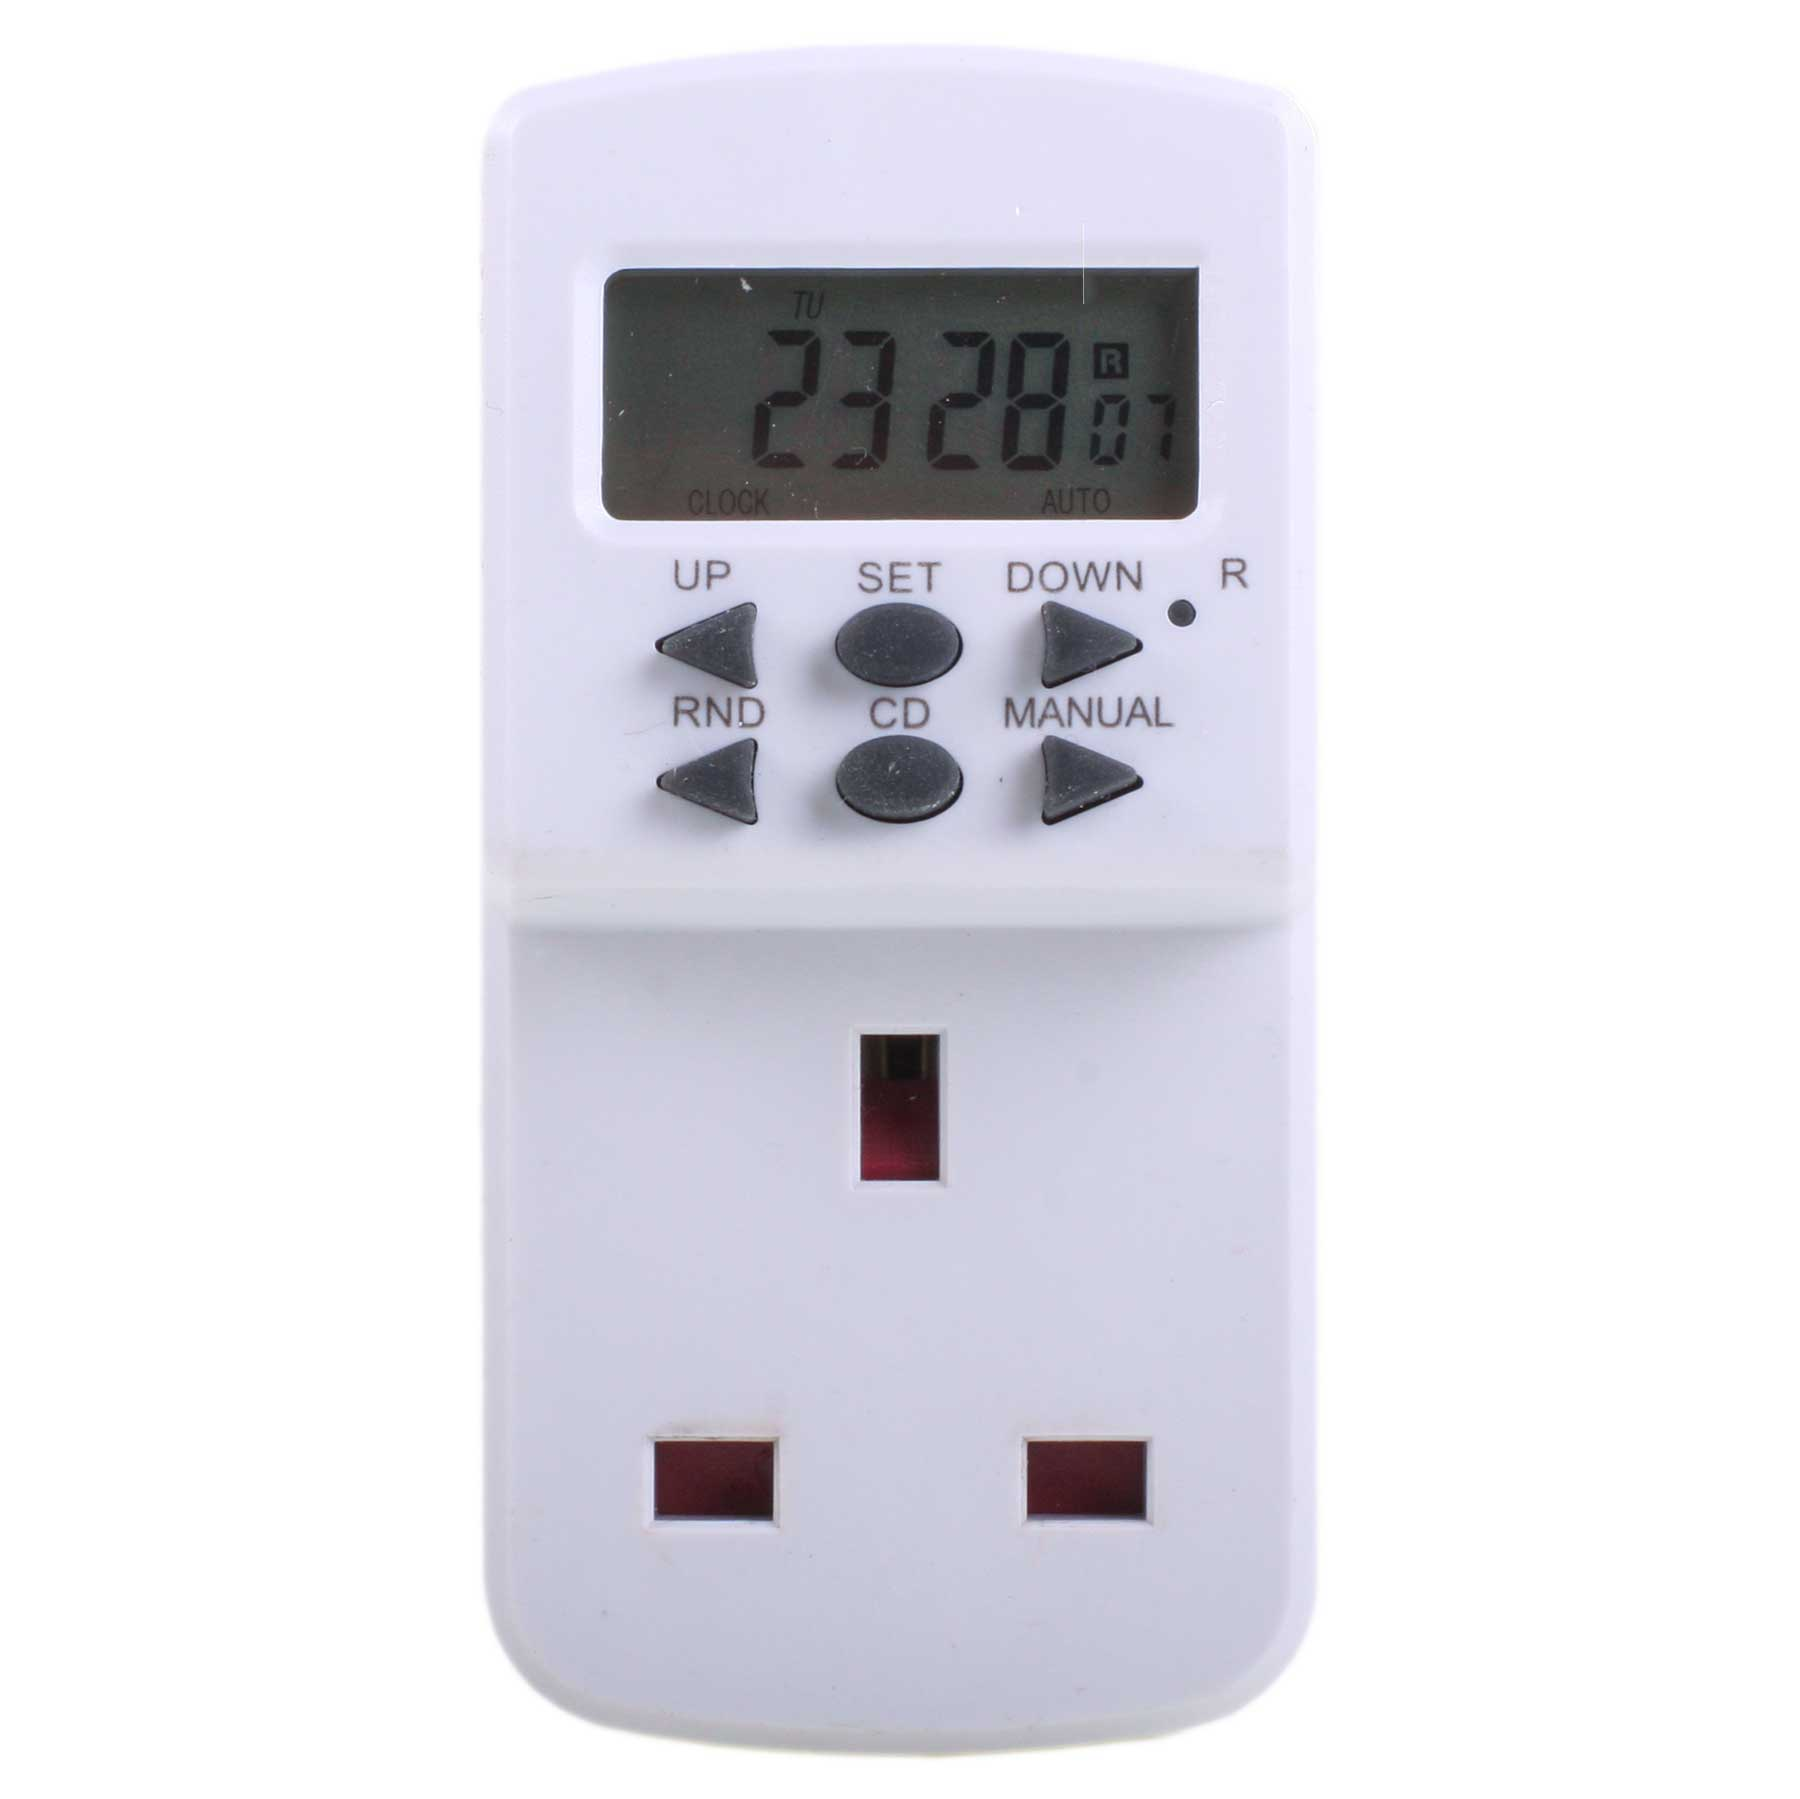 Masterplug TE7 MP 7 Day Plug In Digital Timer Switch